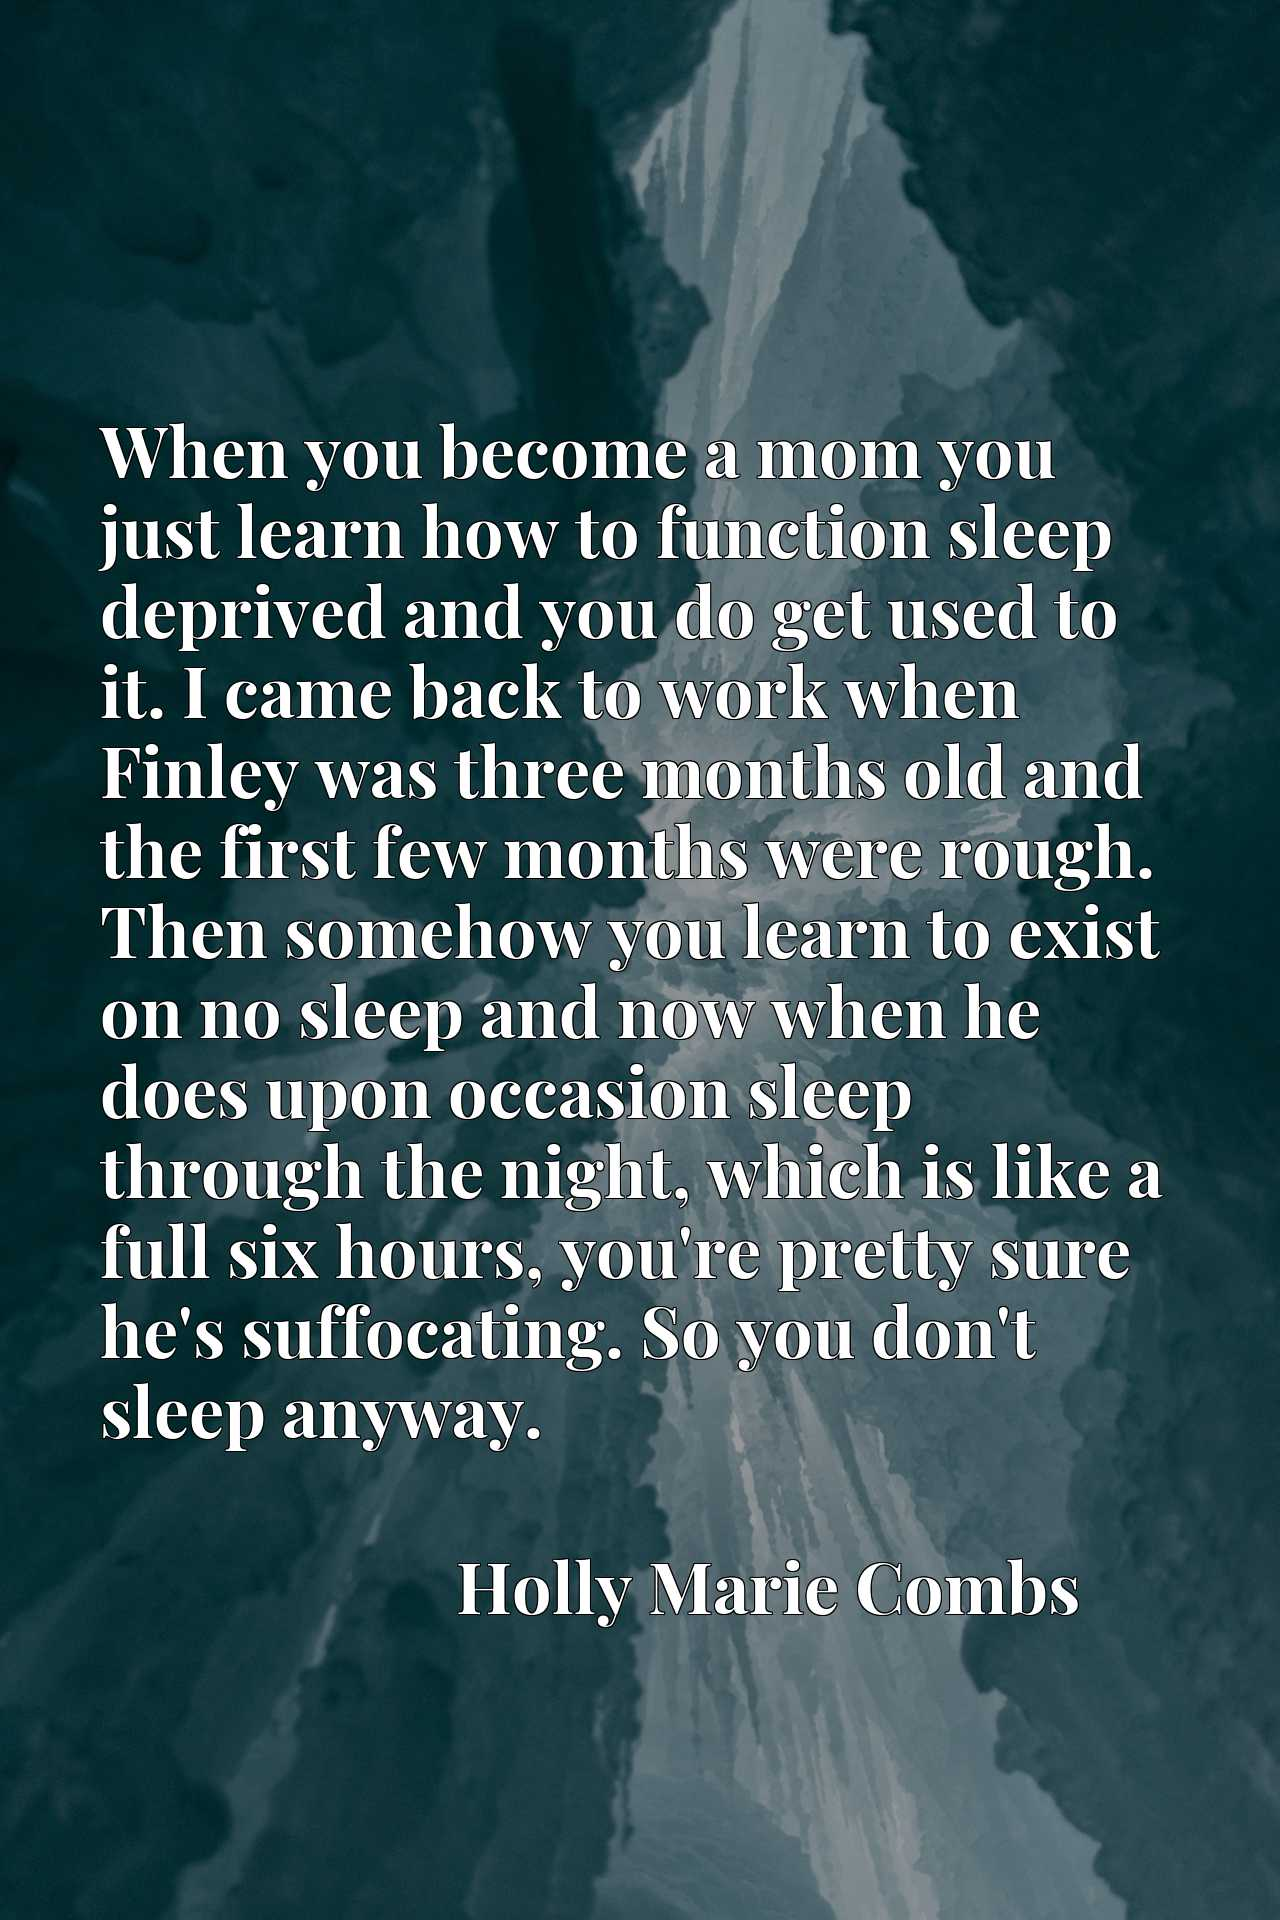 When you become a mom you just learn how to function sleep deprived and you do get used to it. I came back to work when Finley was three months old and the first few months were rough. Then somehow you learn to exist on no sleep and now when he does upon occasion sleep through the night, which is like a full six hours, you're pretty sure he's suffocating. So you don't sleep anyway.